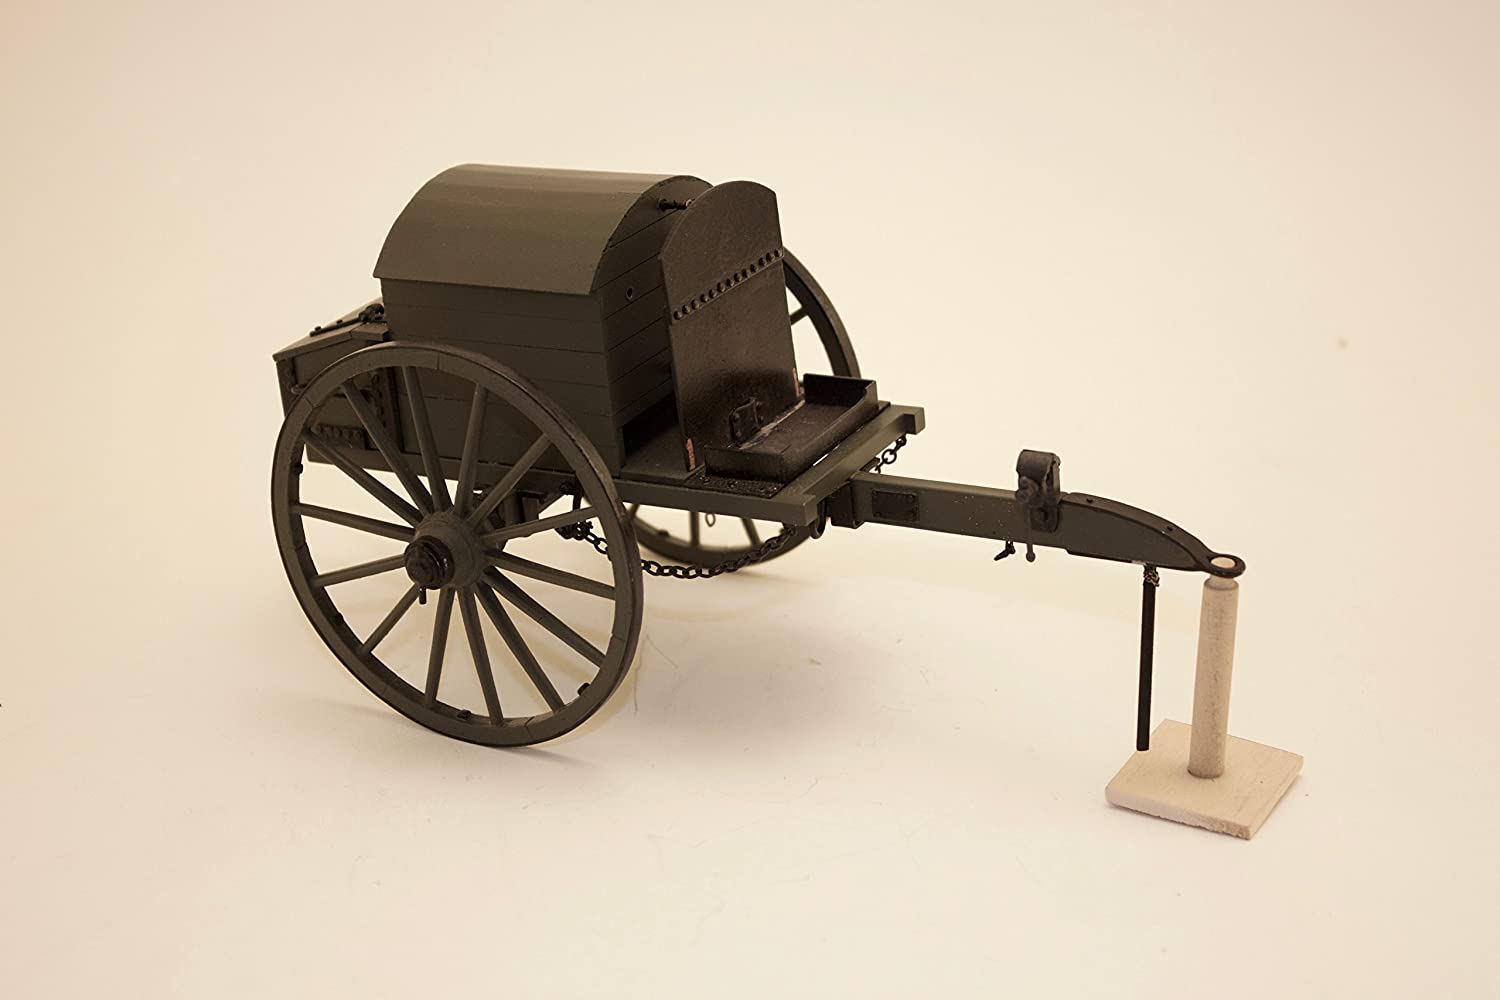 Model expo Guns Of History Civil War Battery Forge Caisson Ammunition Carriage 1:16 Scale